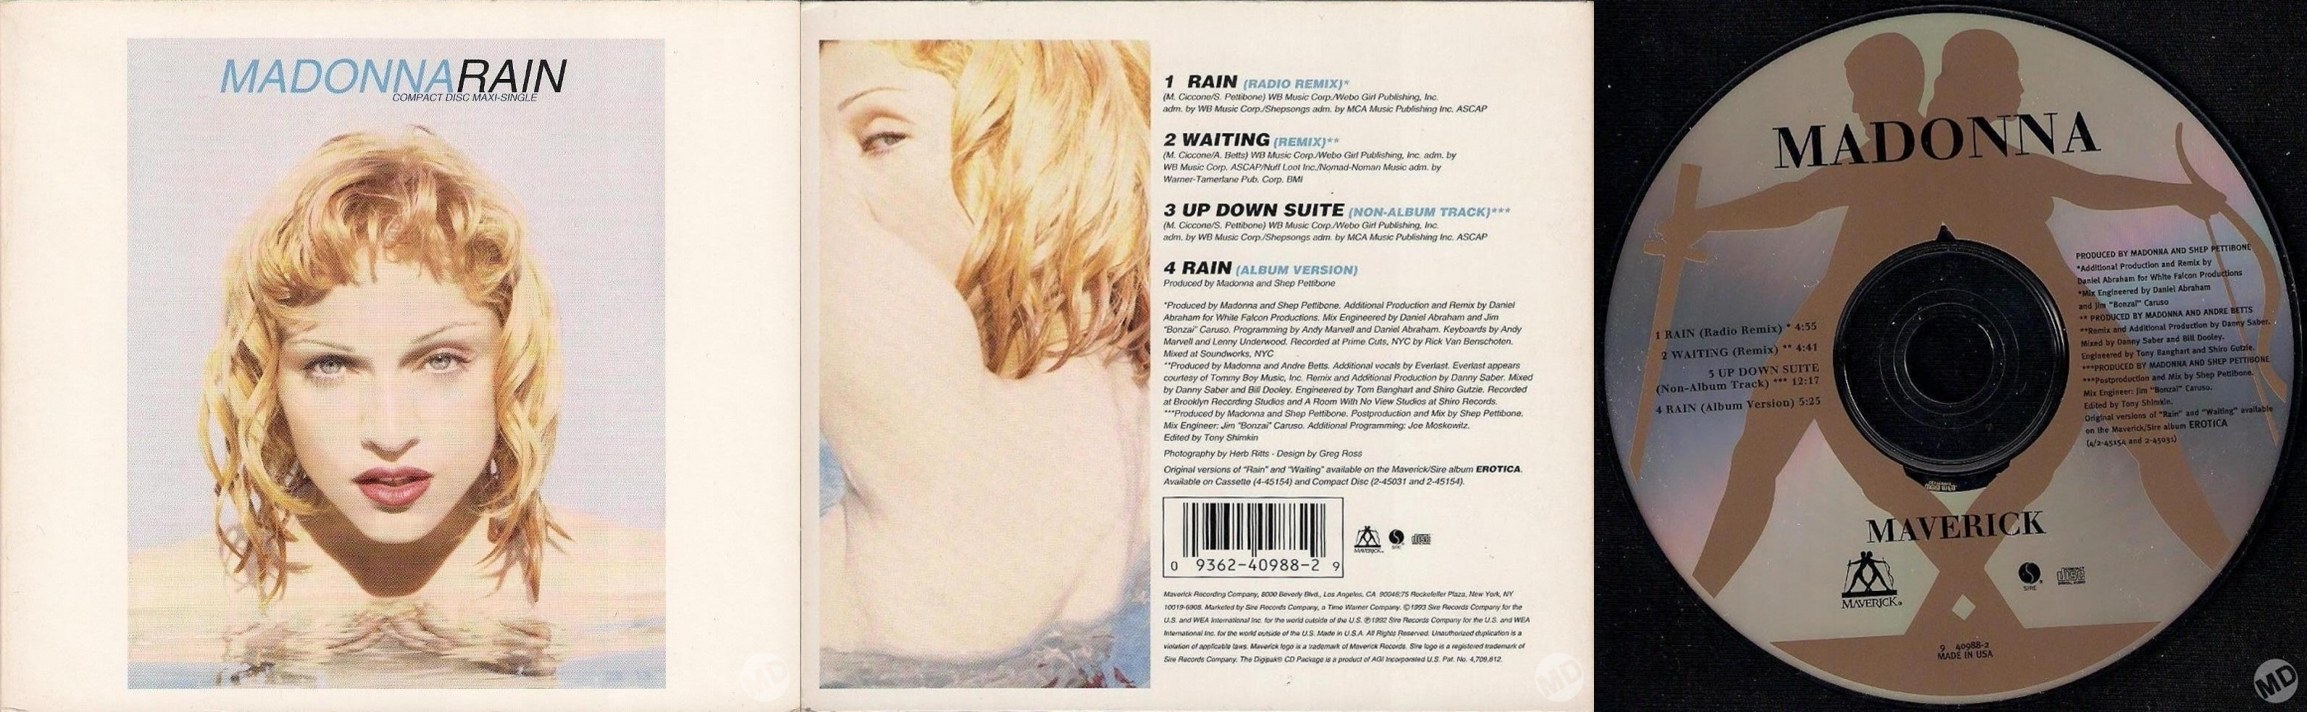 madonna rain cd maxi single usa